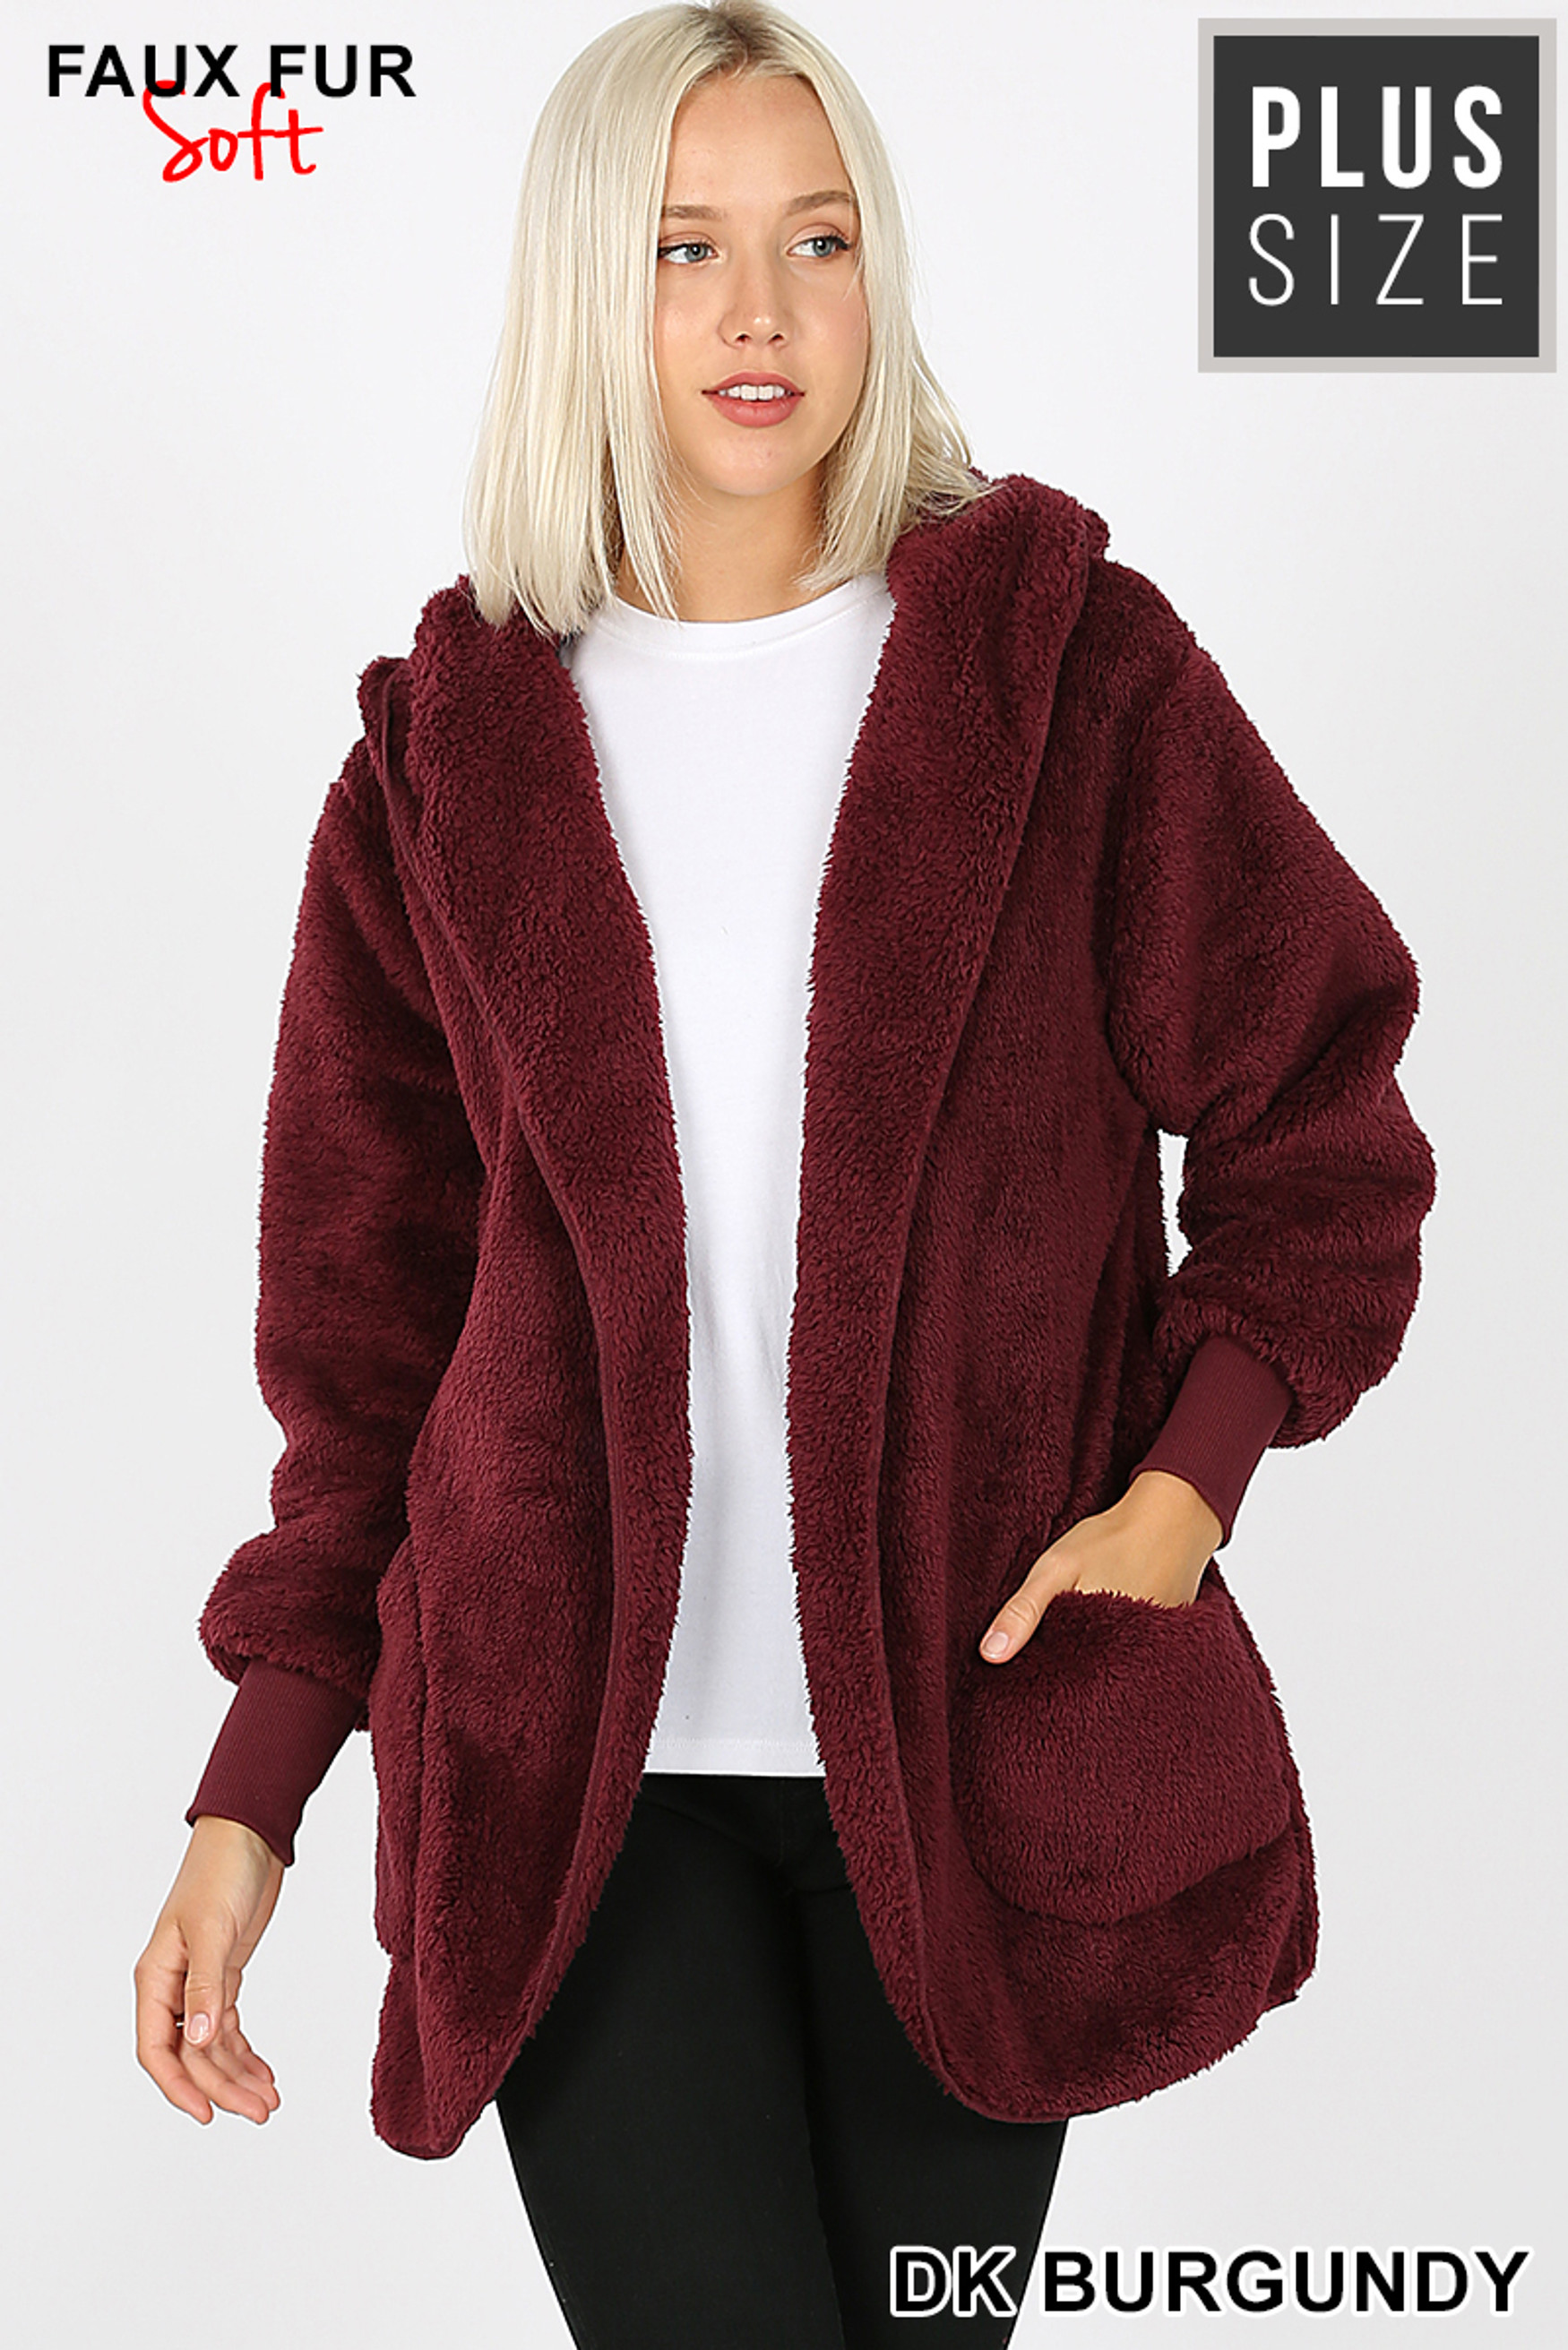 Front Image of Burgundy Faux Fur Hooded Cocoon Plus Size Jacket with Pockets